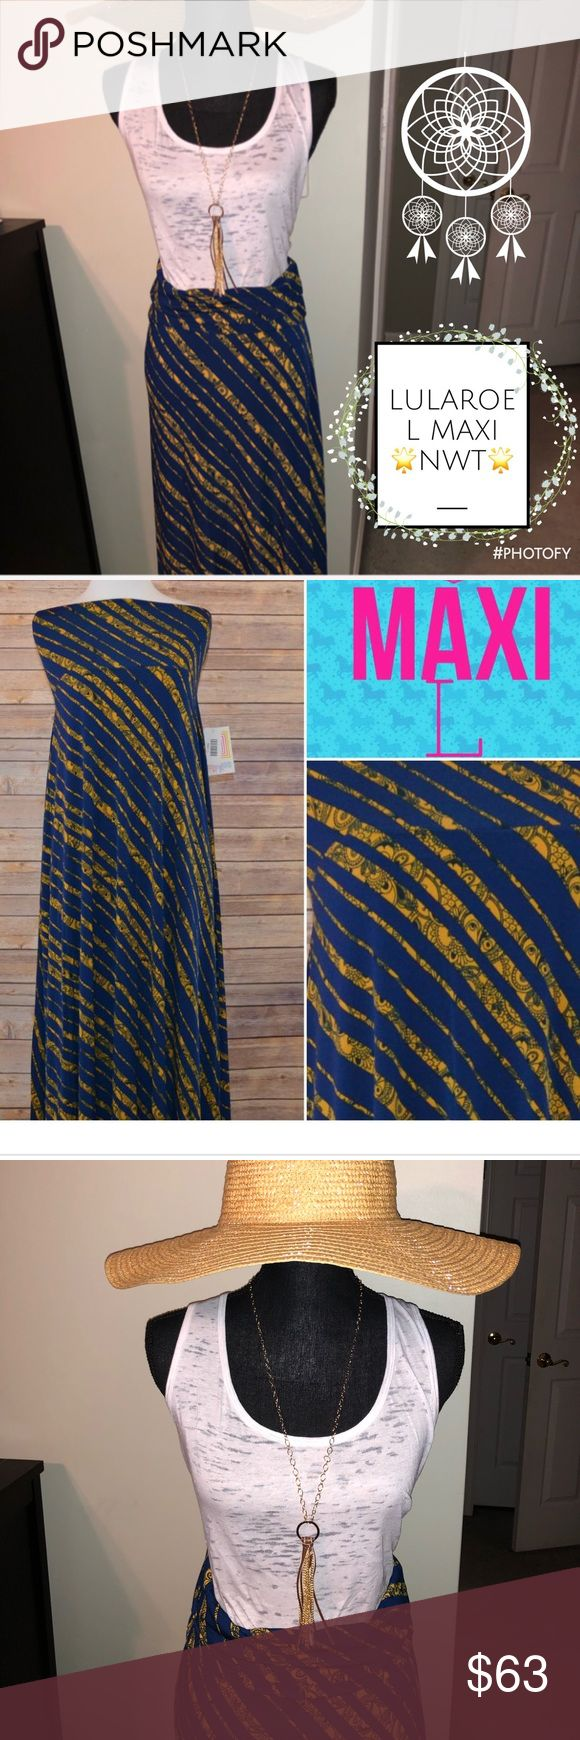 ☀️🆕#Blue #Yellow #Striped #LuLaRoe #Maxi L NWT☀️ Gorgeous double printed slinky navy blue and sunny yellow!   Just beautiful! Seen once and doubt we will see again. Size L (14-16) with some stretch   NWT🌟 Boutique Piece🍾 Handpicked with Love💜 Price Firm- high cost item🍷 LuLaRoe Skirts Maxi